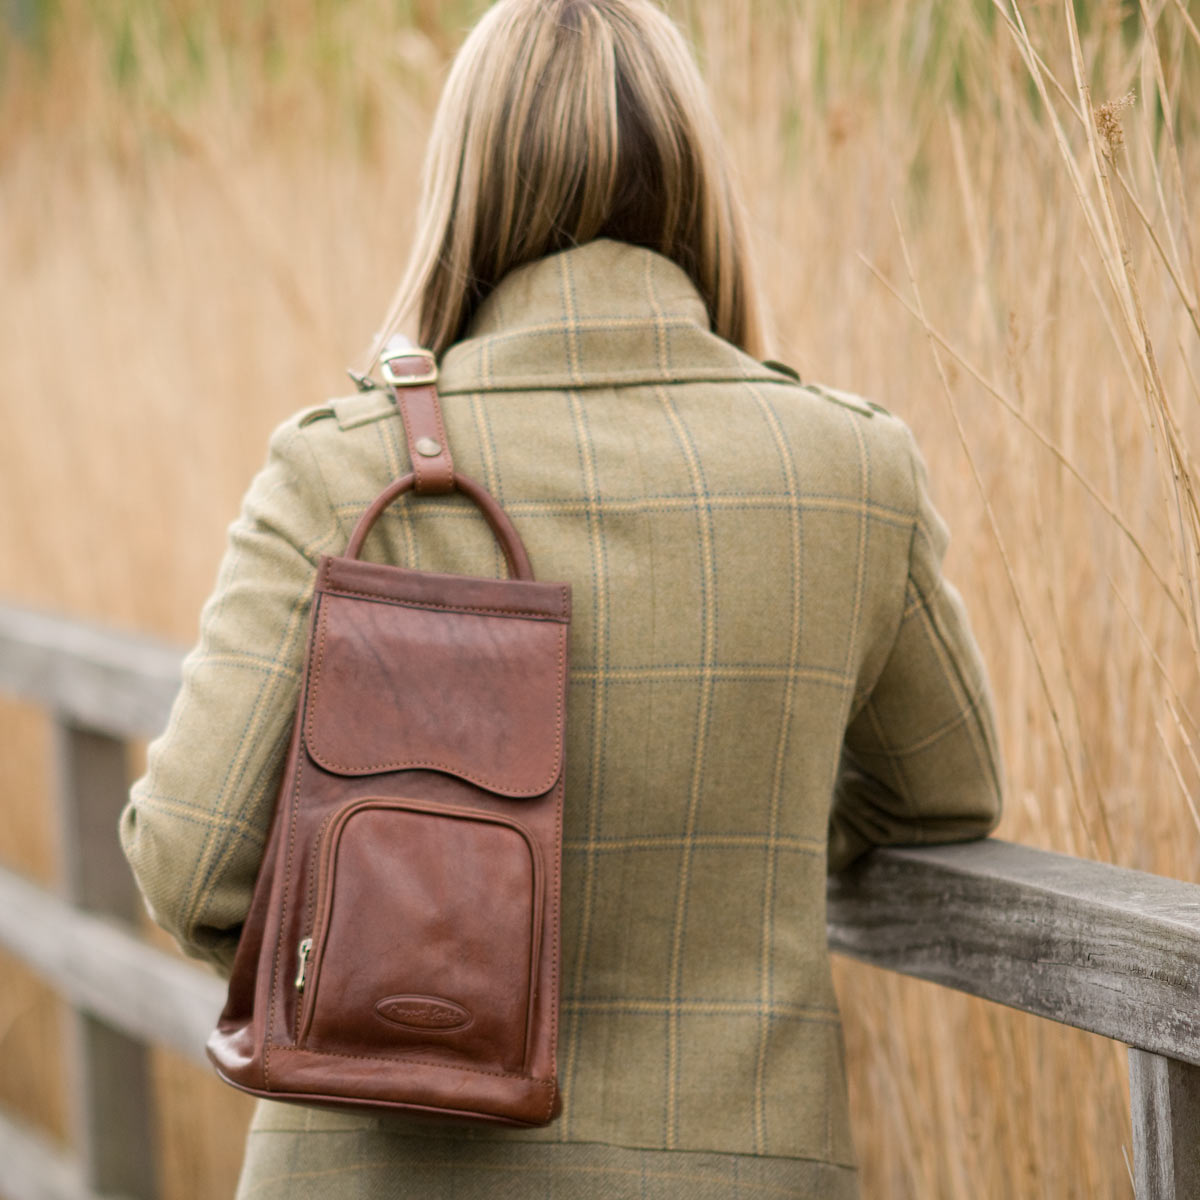 Image 6 of the 'Carli' Black Veg-Tanned Leather Backpack